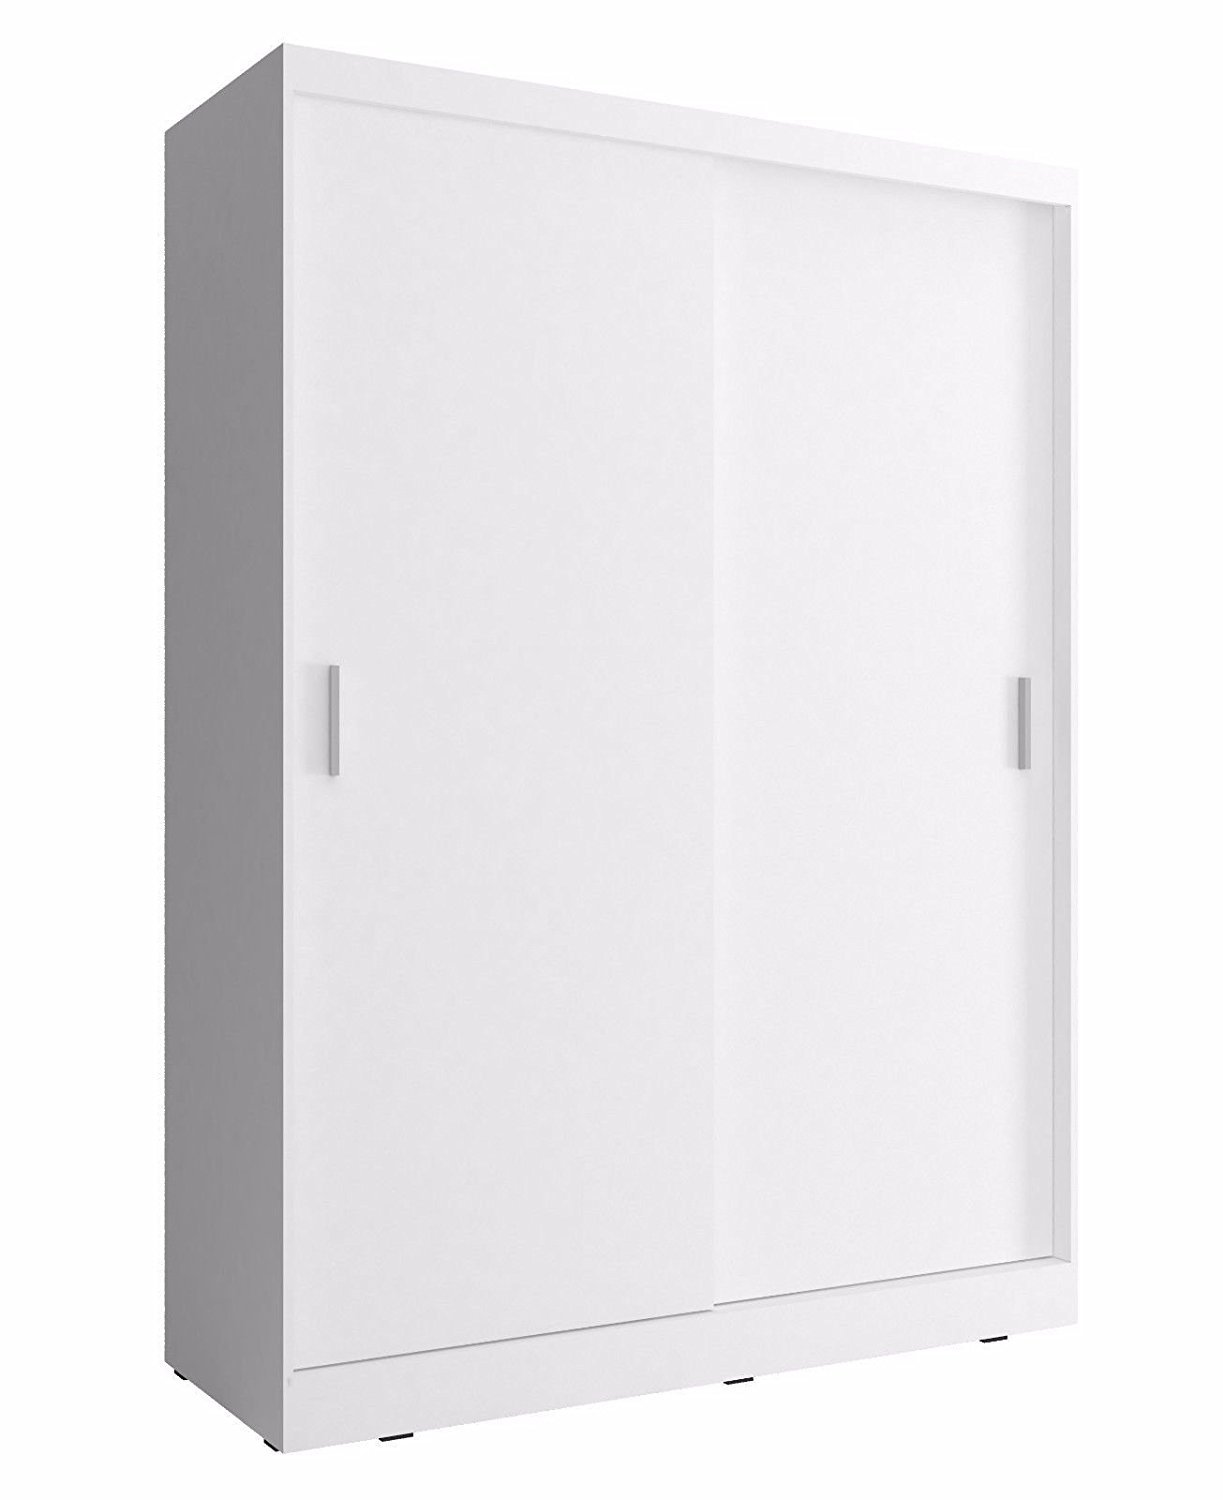 CHECO HOME AND GARDEN 2-DAY PREMIUM SHIPPING AVAILABLE WHITE 130 cm WIDE BRAND NEW SLIDING 2 DOORS WARDROBE CHECO LTD